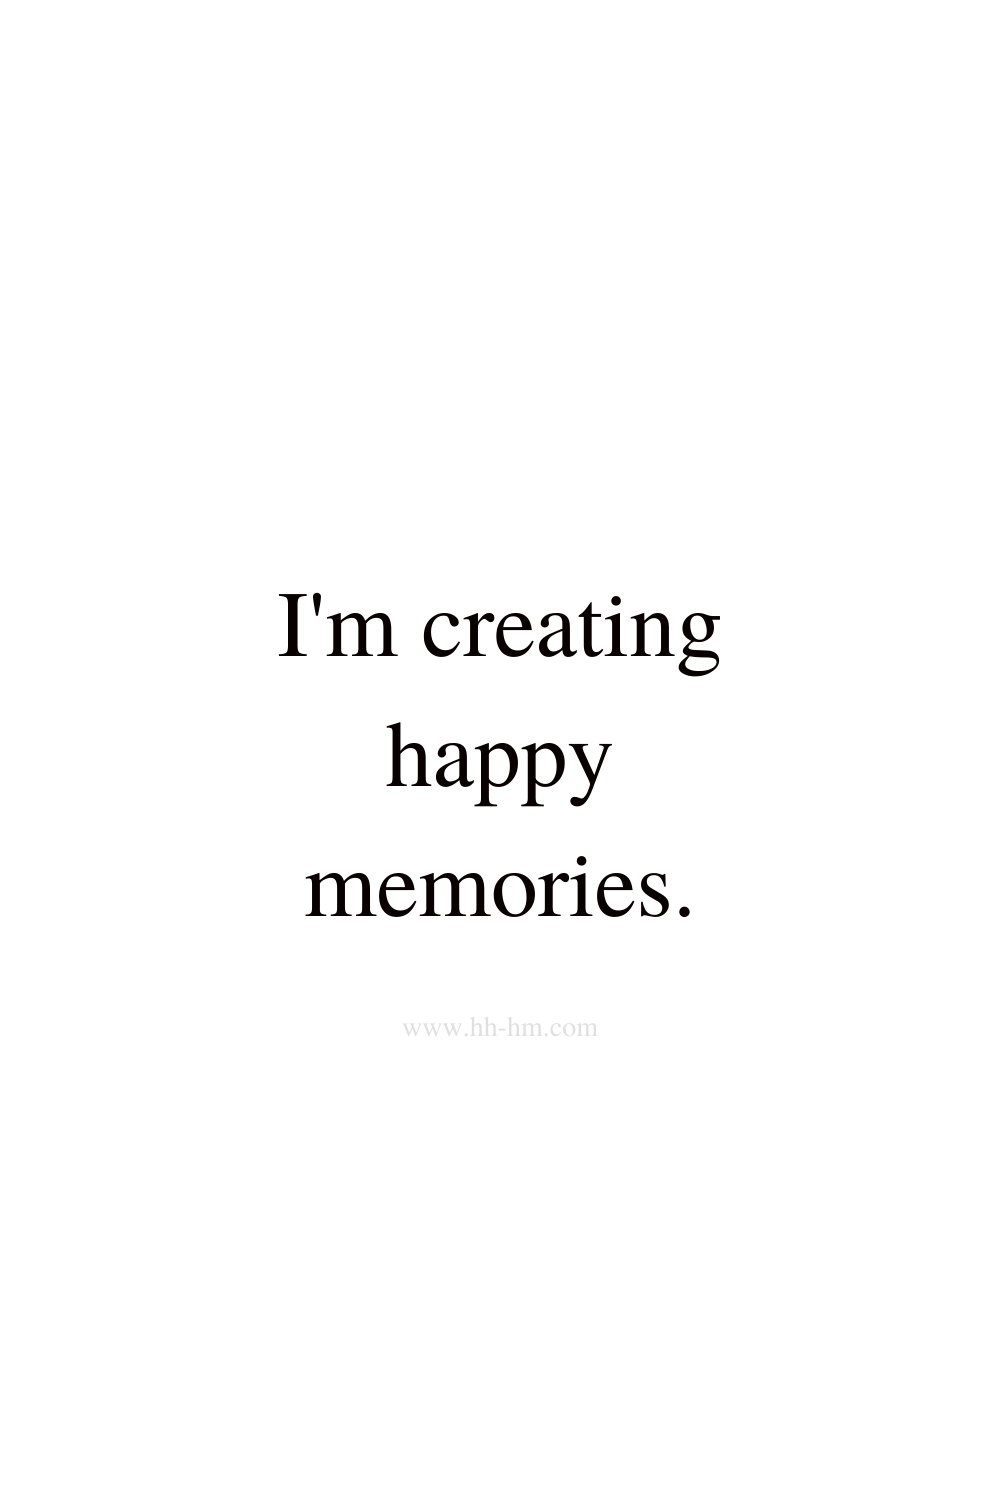 I am creating happy memories - morning affirmations